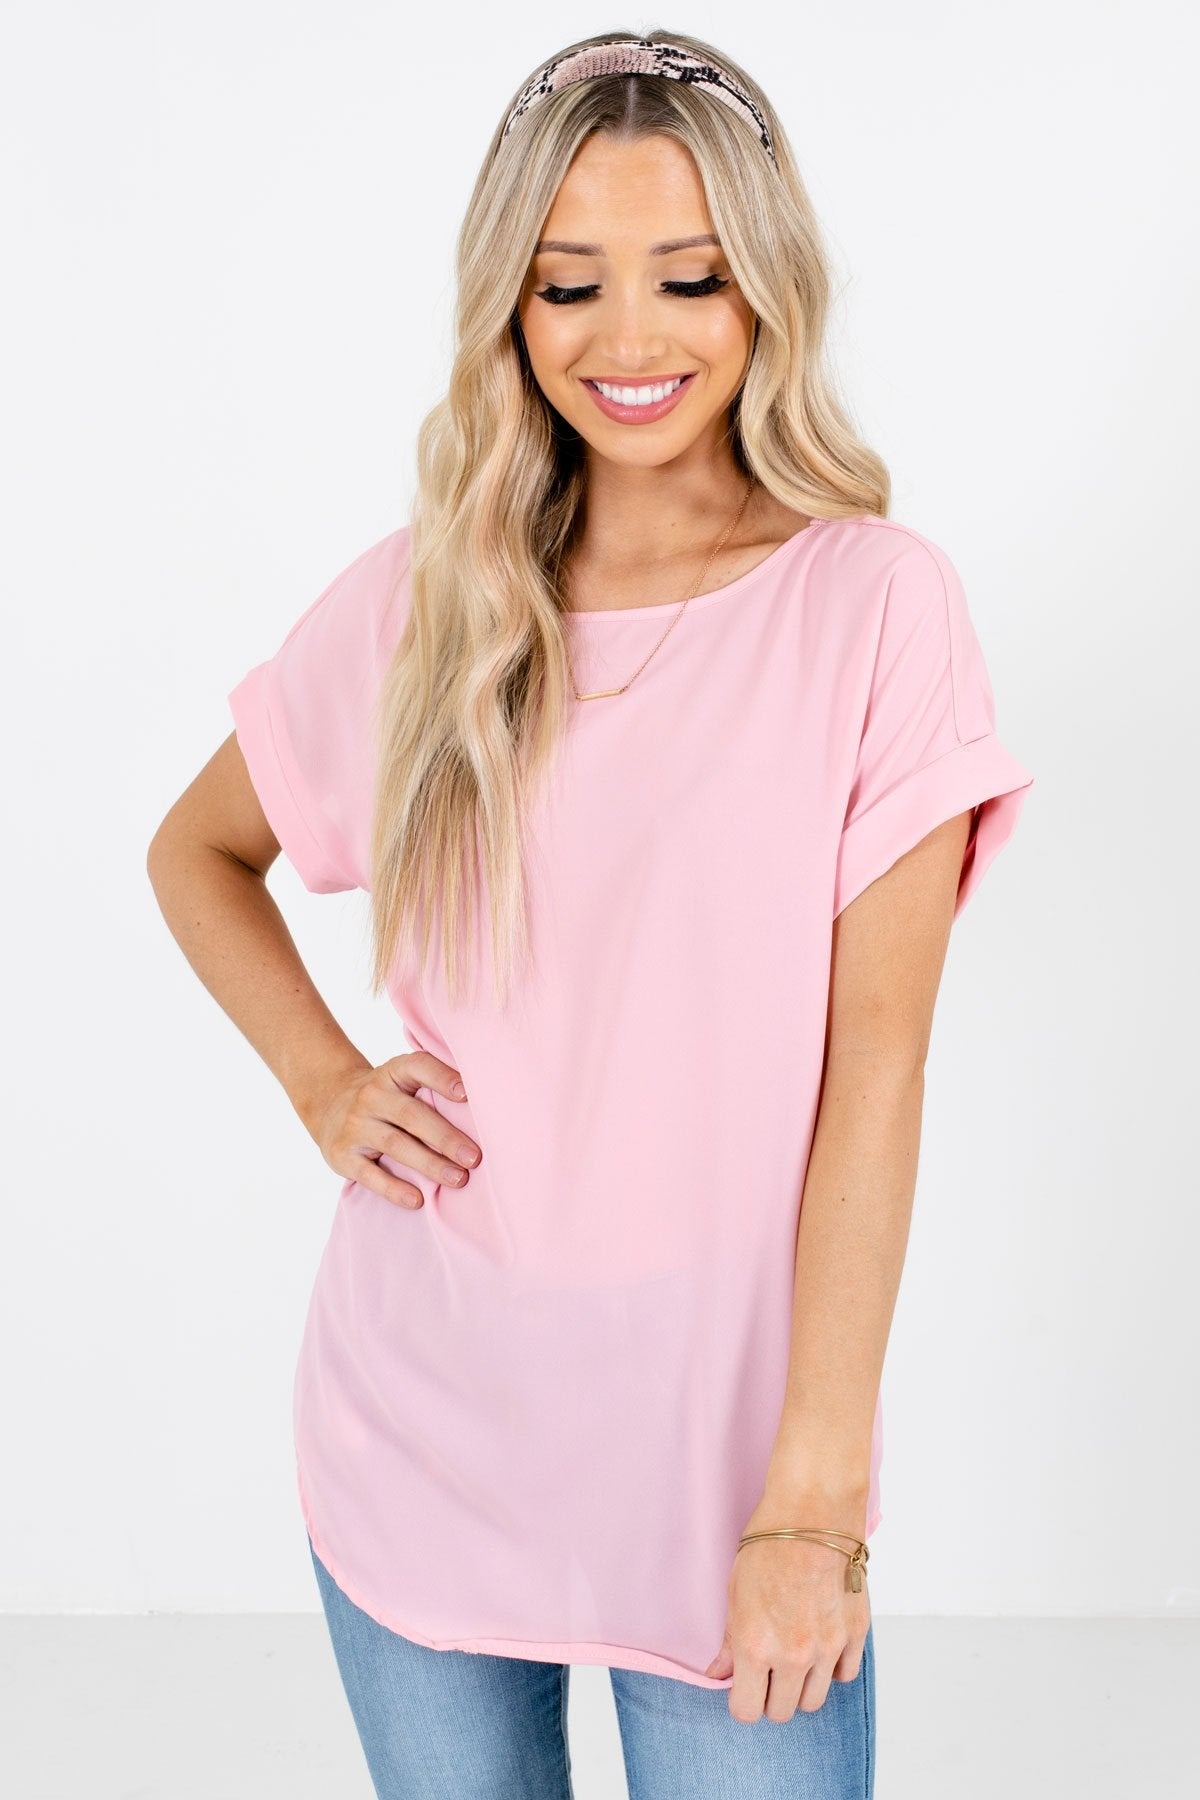 Dusty Pink Lightweight and Flowy Boutique Blouses for Women